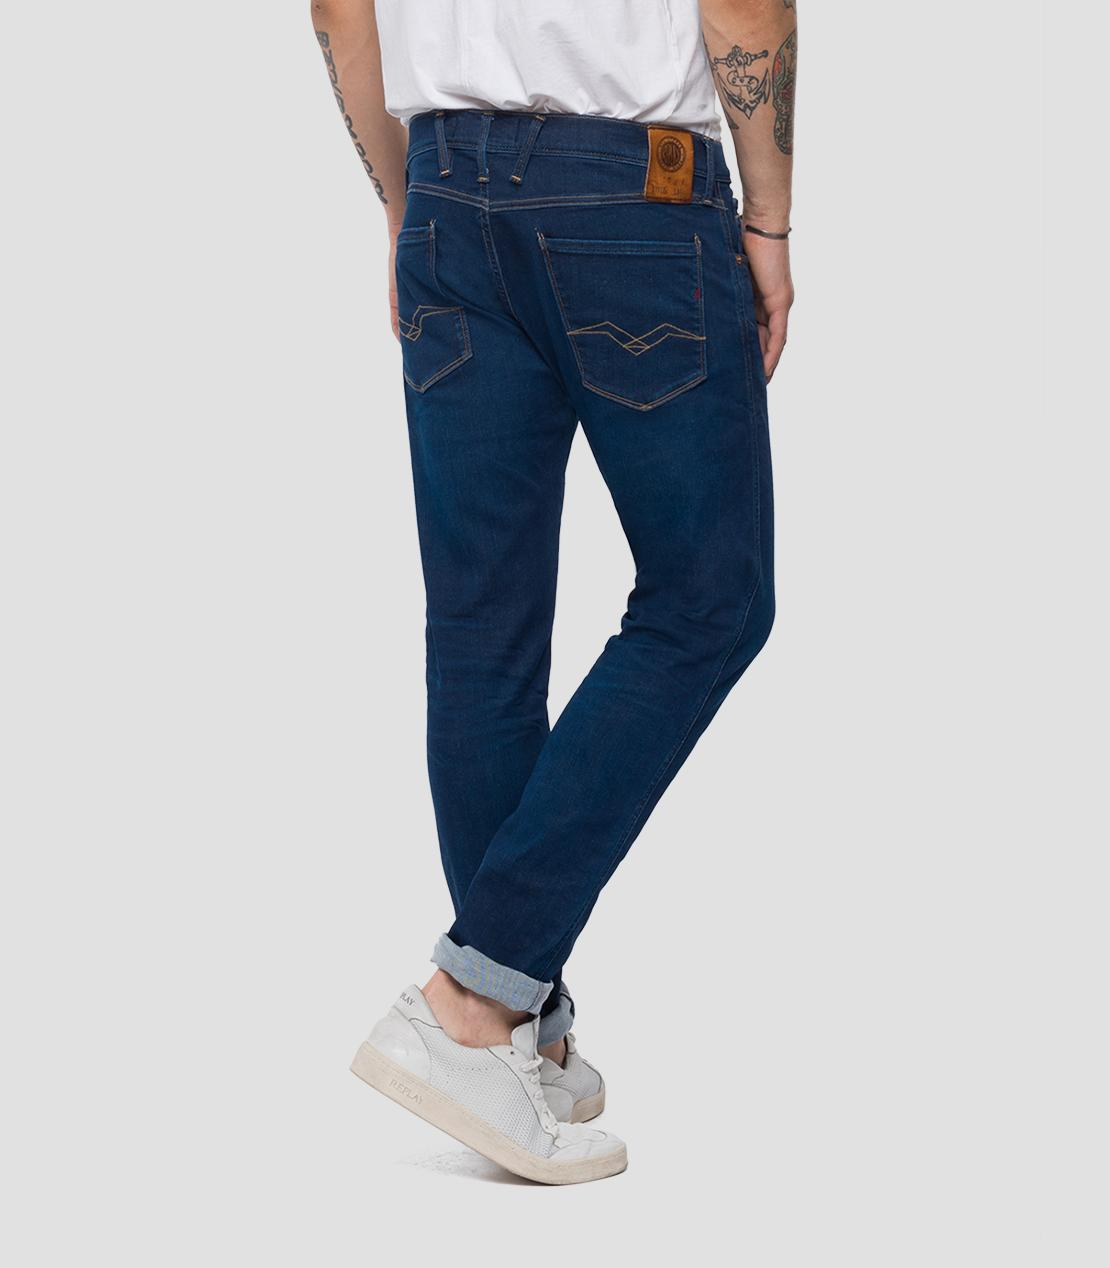 HYPERFLEX SLIM FIT ANBASS JEANS SURF BLUE Replay - 7clothing Cardiff